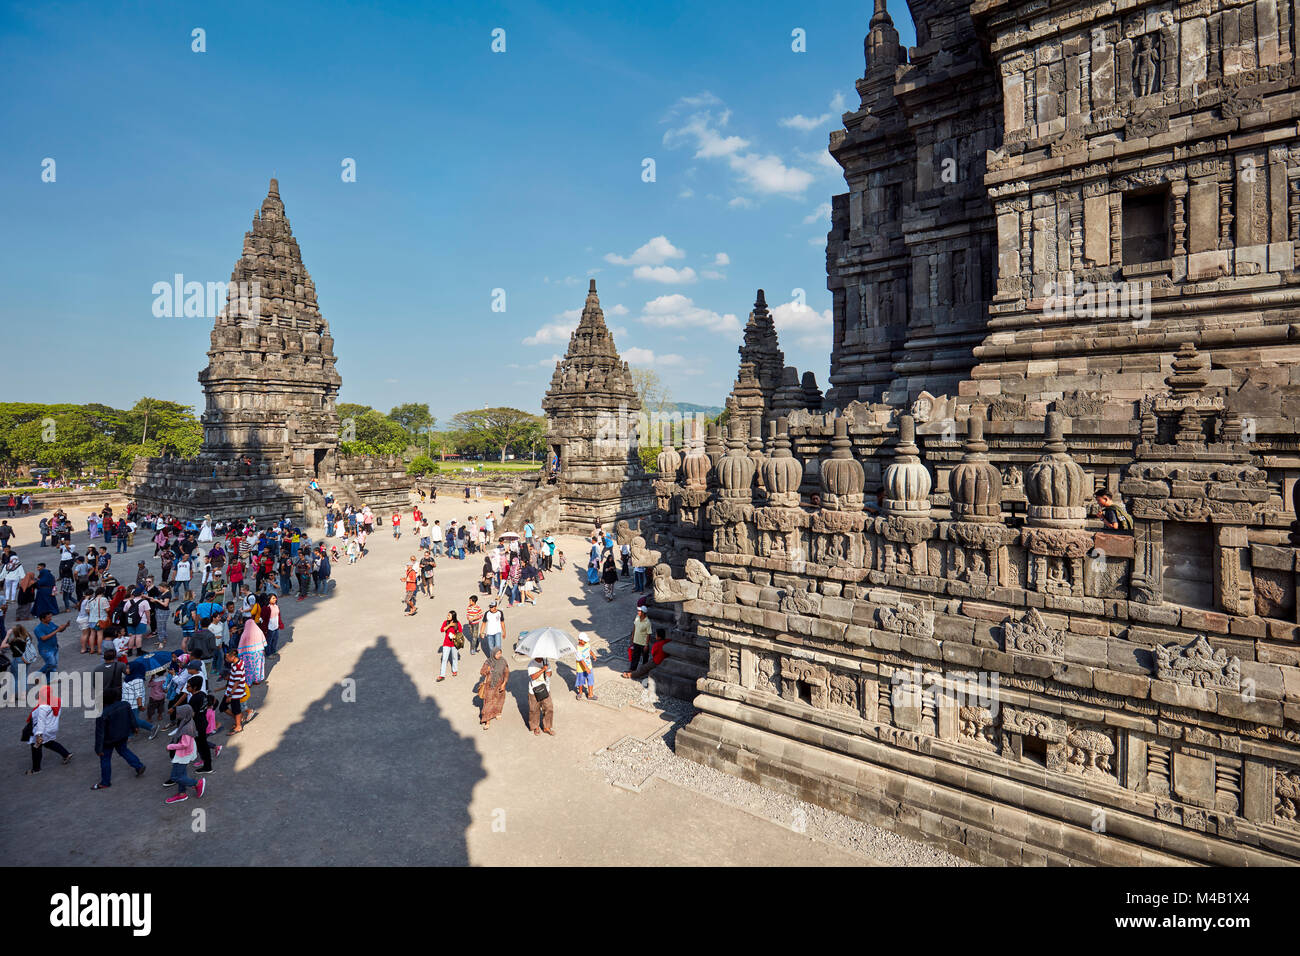 Tourists at the Prambanan Hindu Temple Compound. Special Region of Yogyakarta, Java, Indonesia. - Stock Image